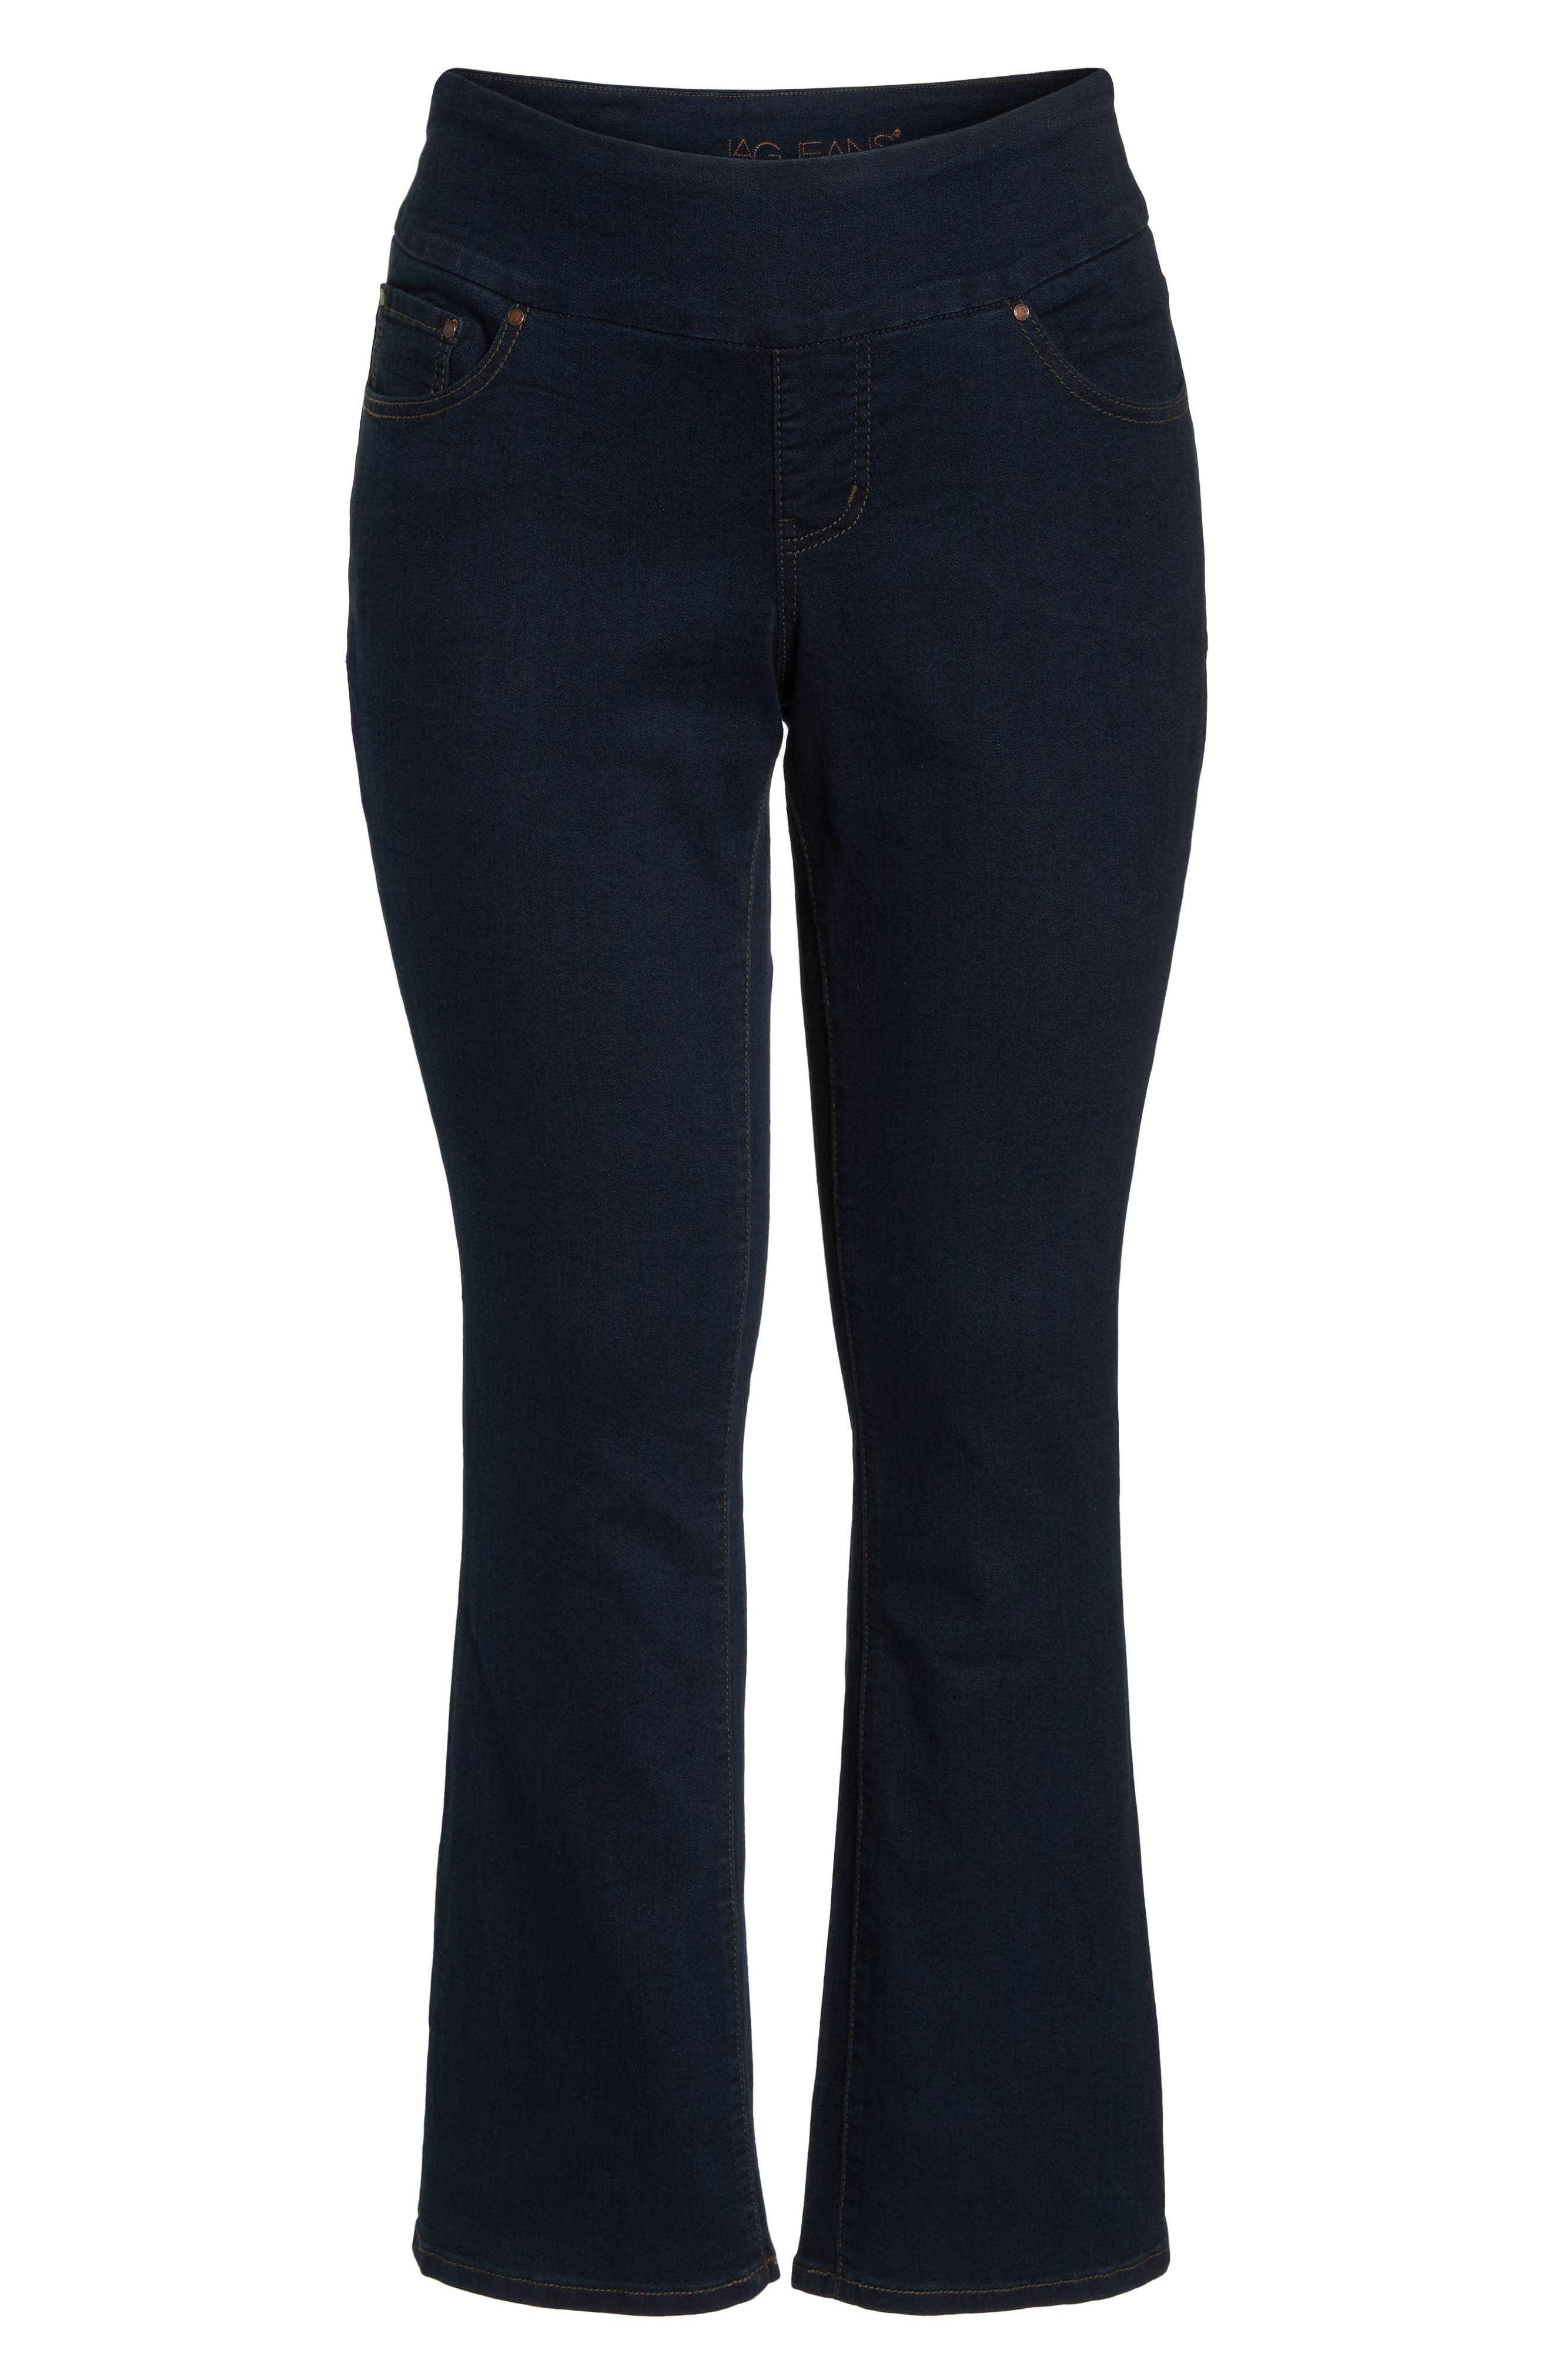 Peri Stretch Straight Leg Jeans,                             Alternate thumbnail 7, color,                             Dark Indigo